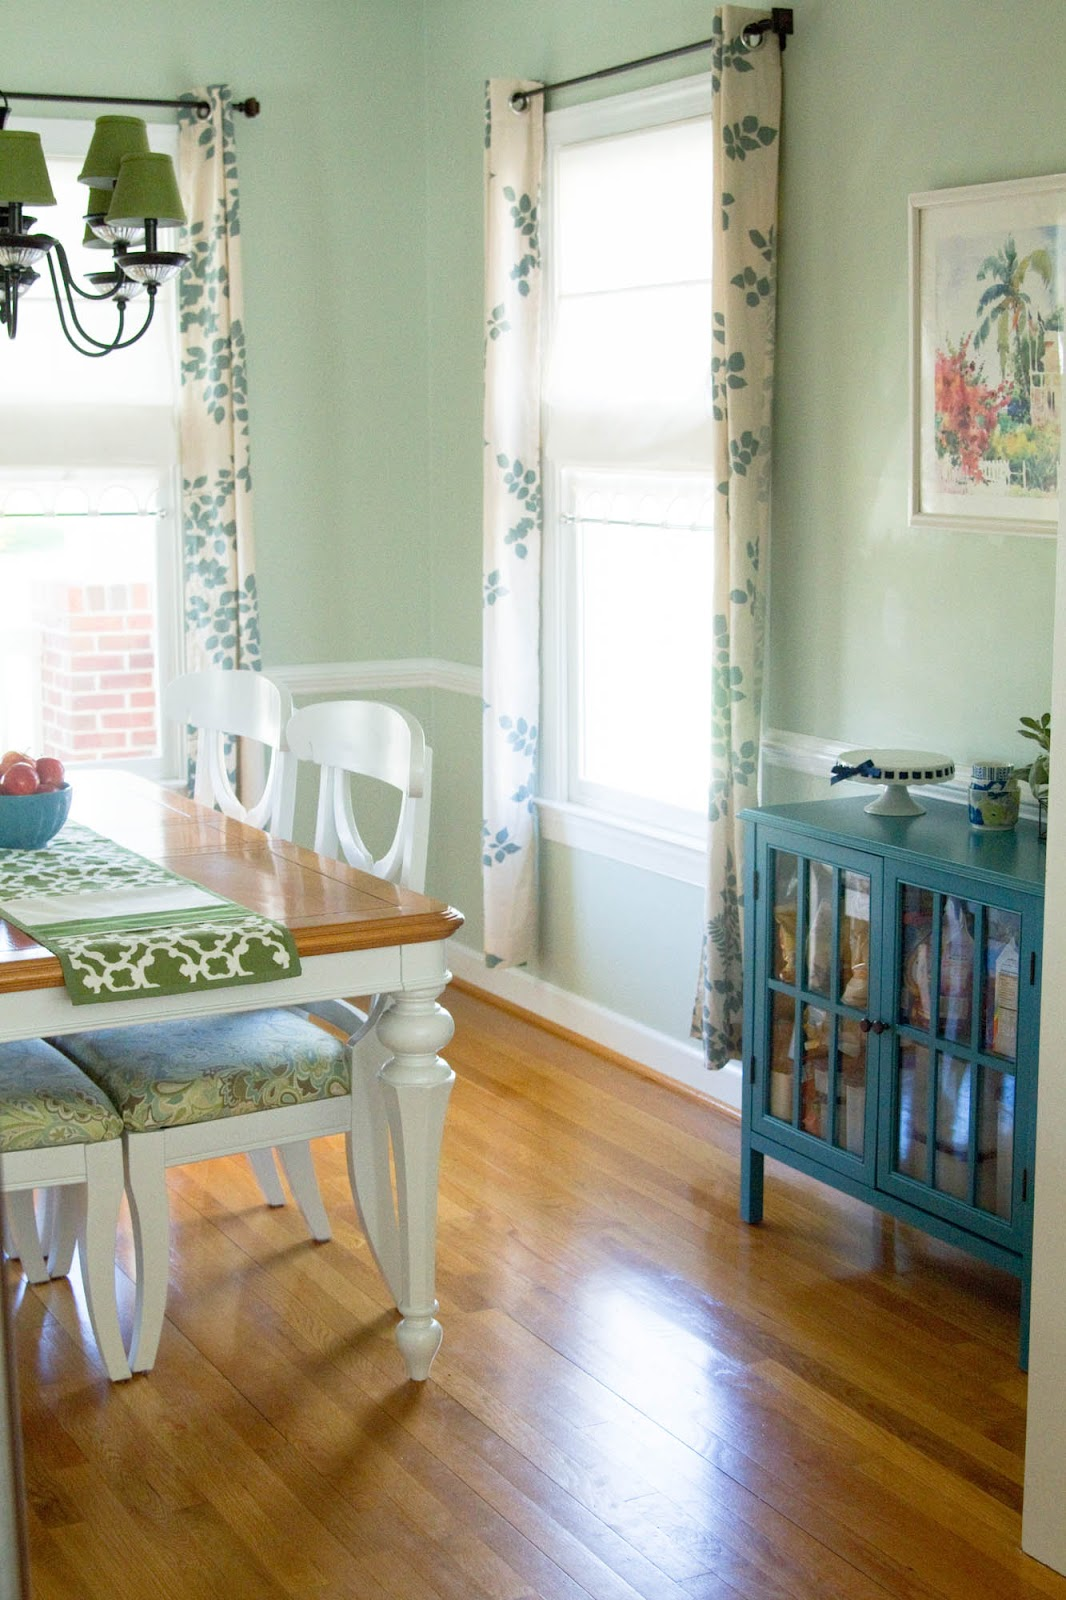 Little Bits of Home: Dining Room Progress: Curtains + Storage